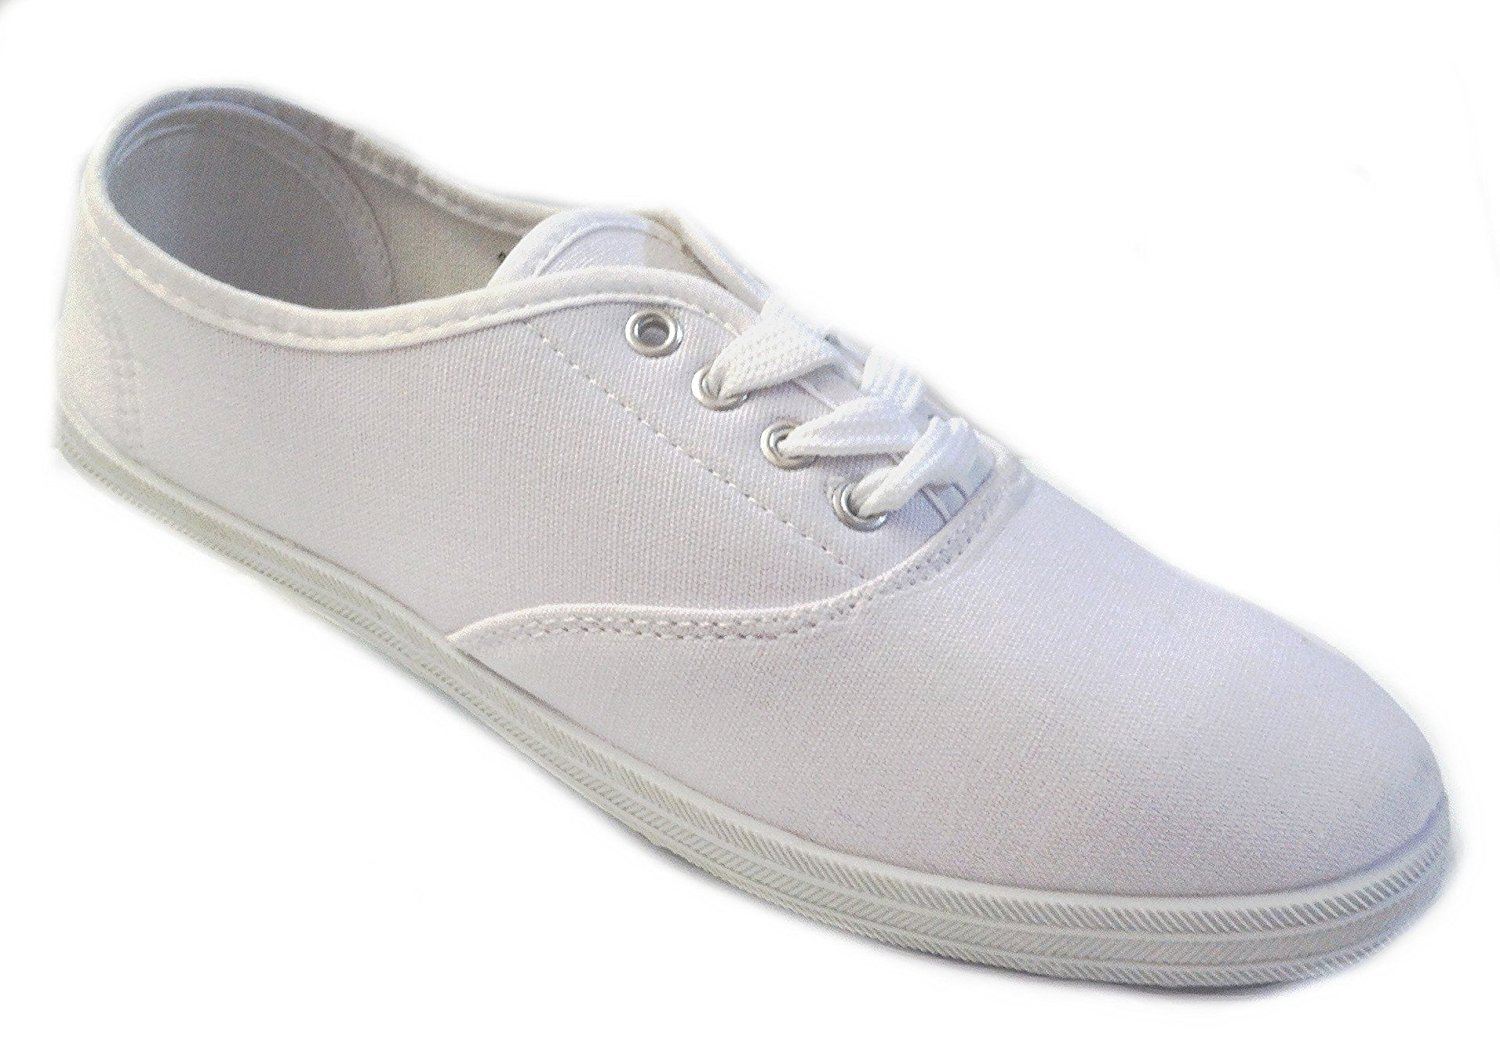 6d64cafe3376 Get Quotations · Shoes 18 Womens Canvas Shoes Lace up Sneakers 18 Colors  Available